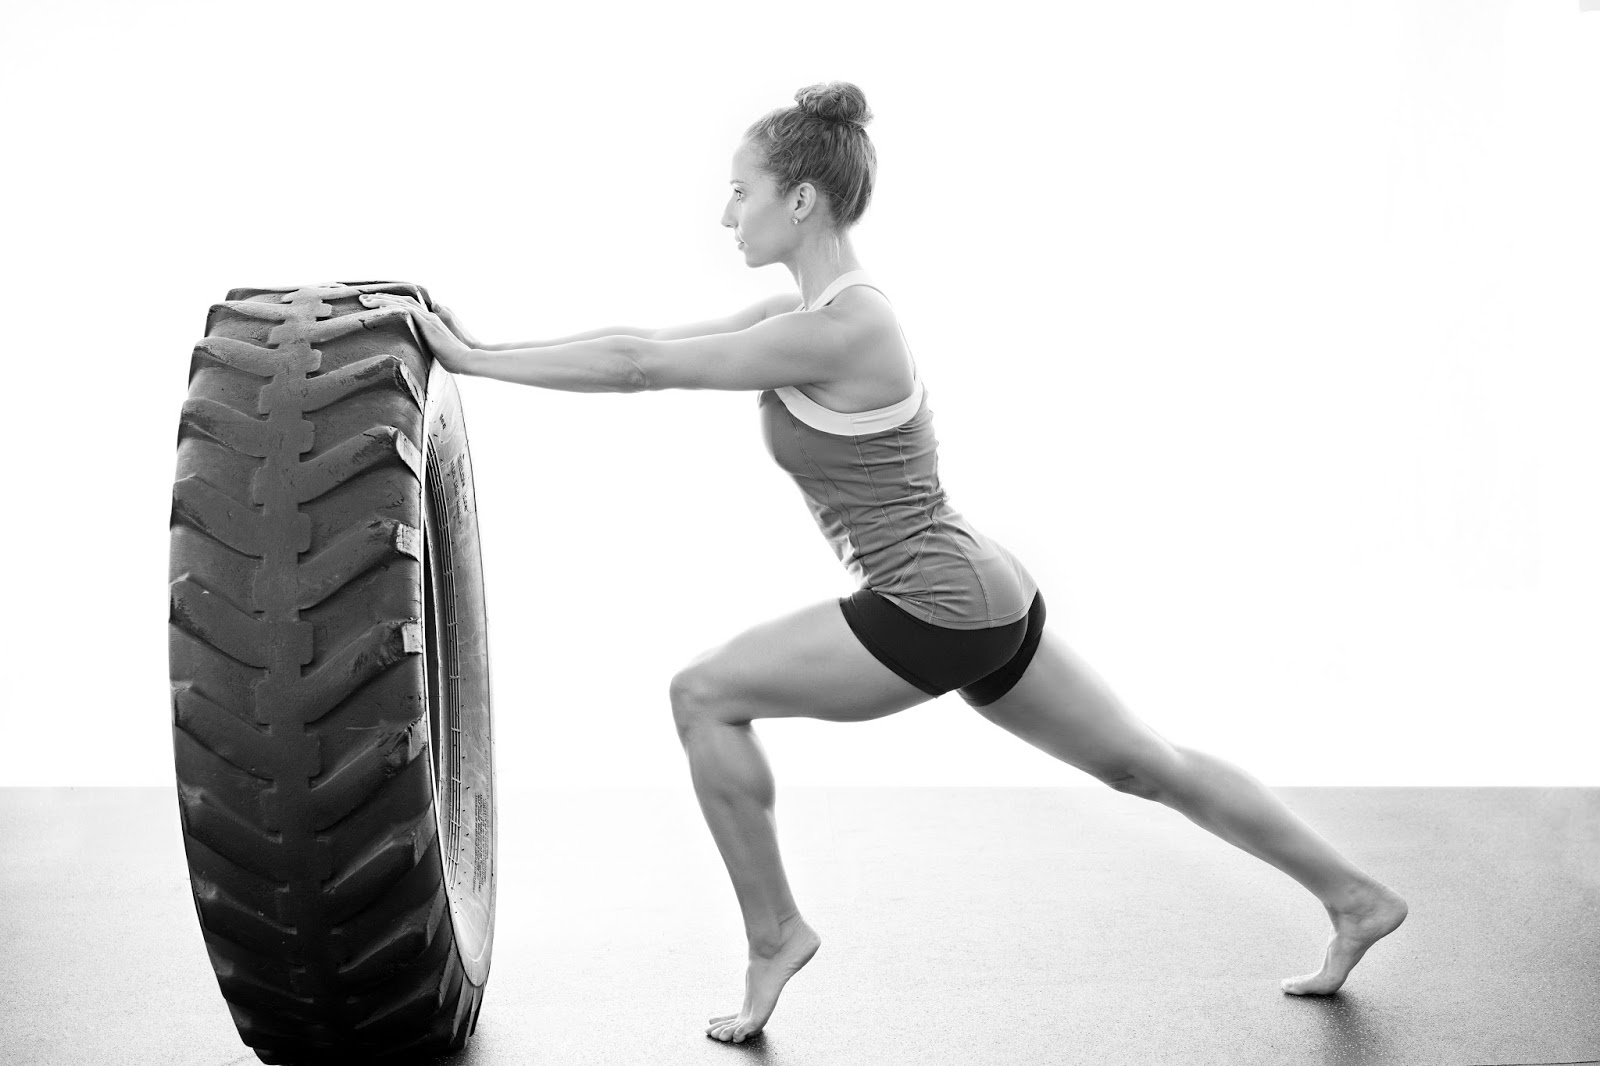 Tire Flip Exercise Tips How to